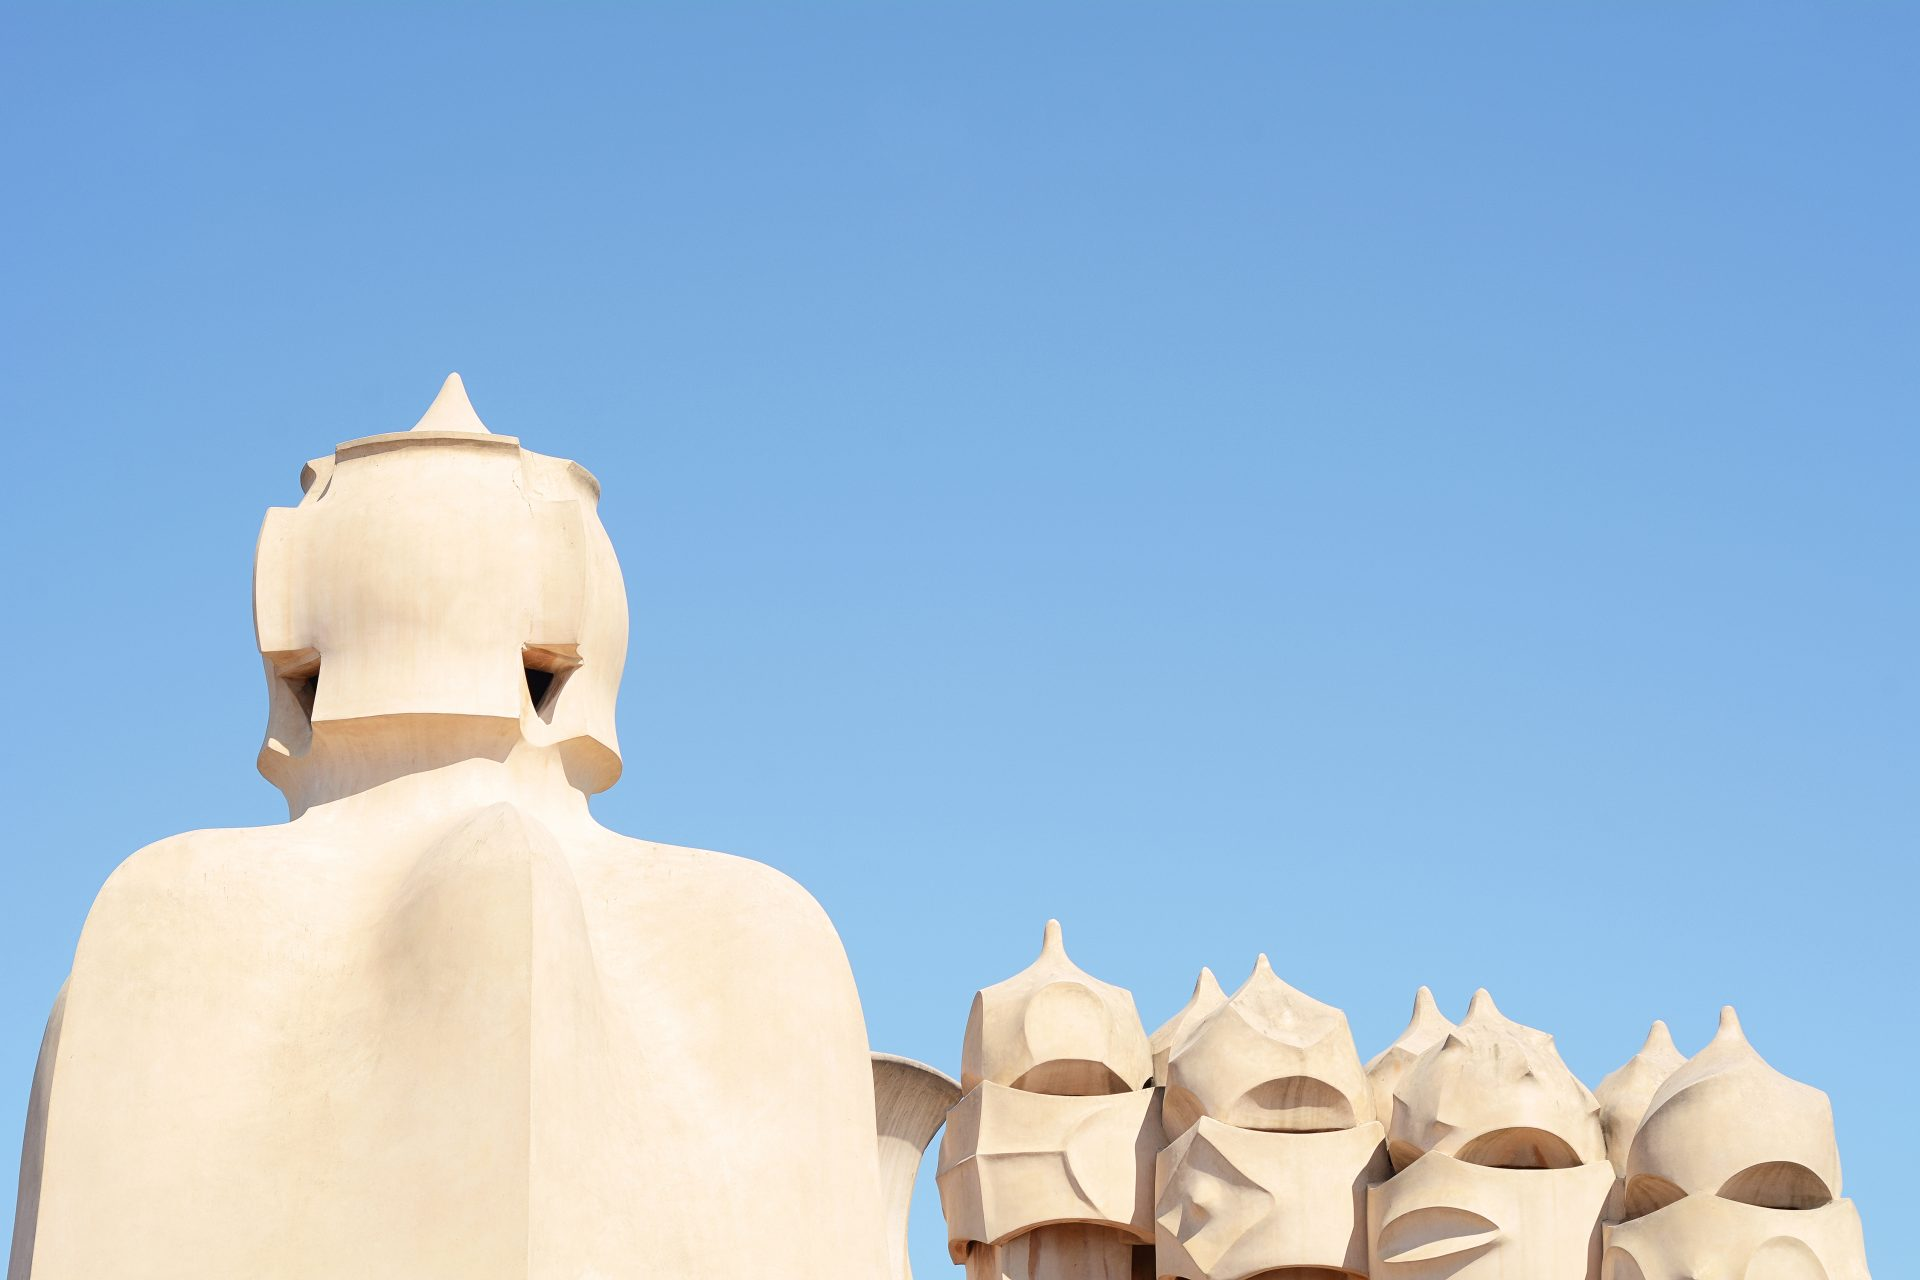 Casa Mila La Pedrera Building In Barcelona, Spain.